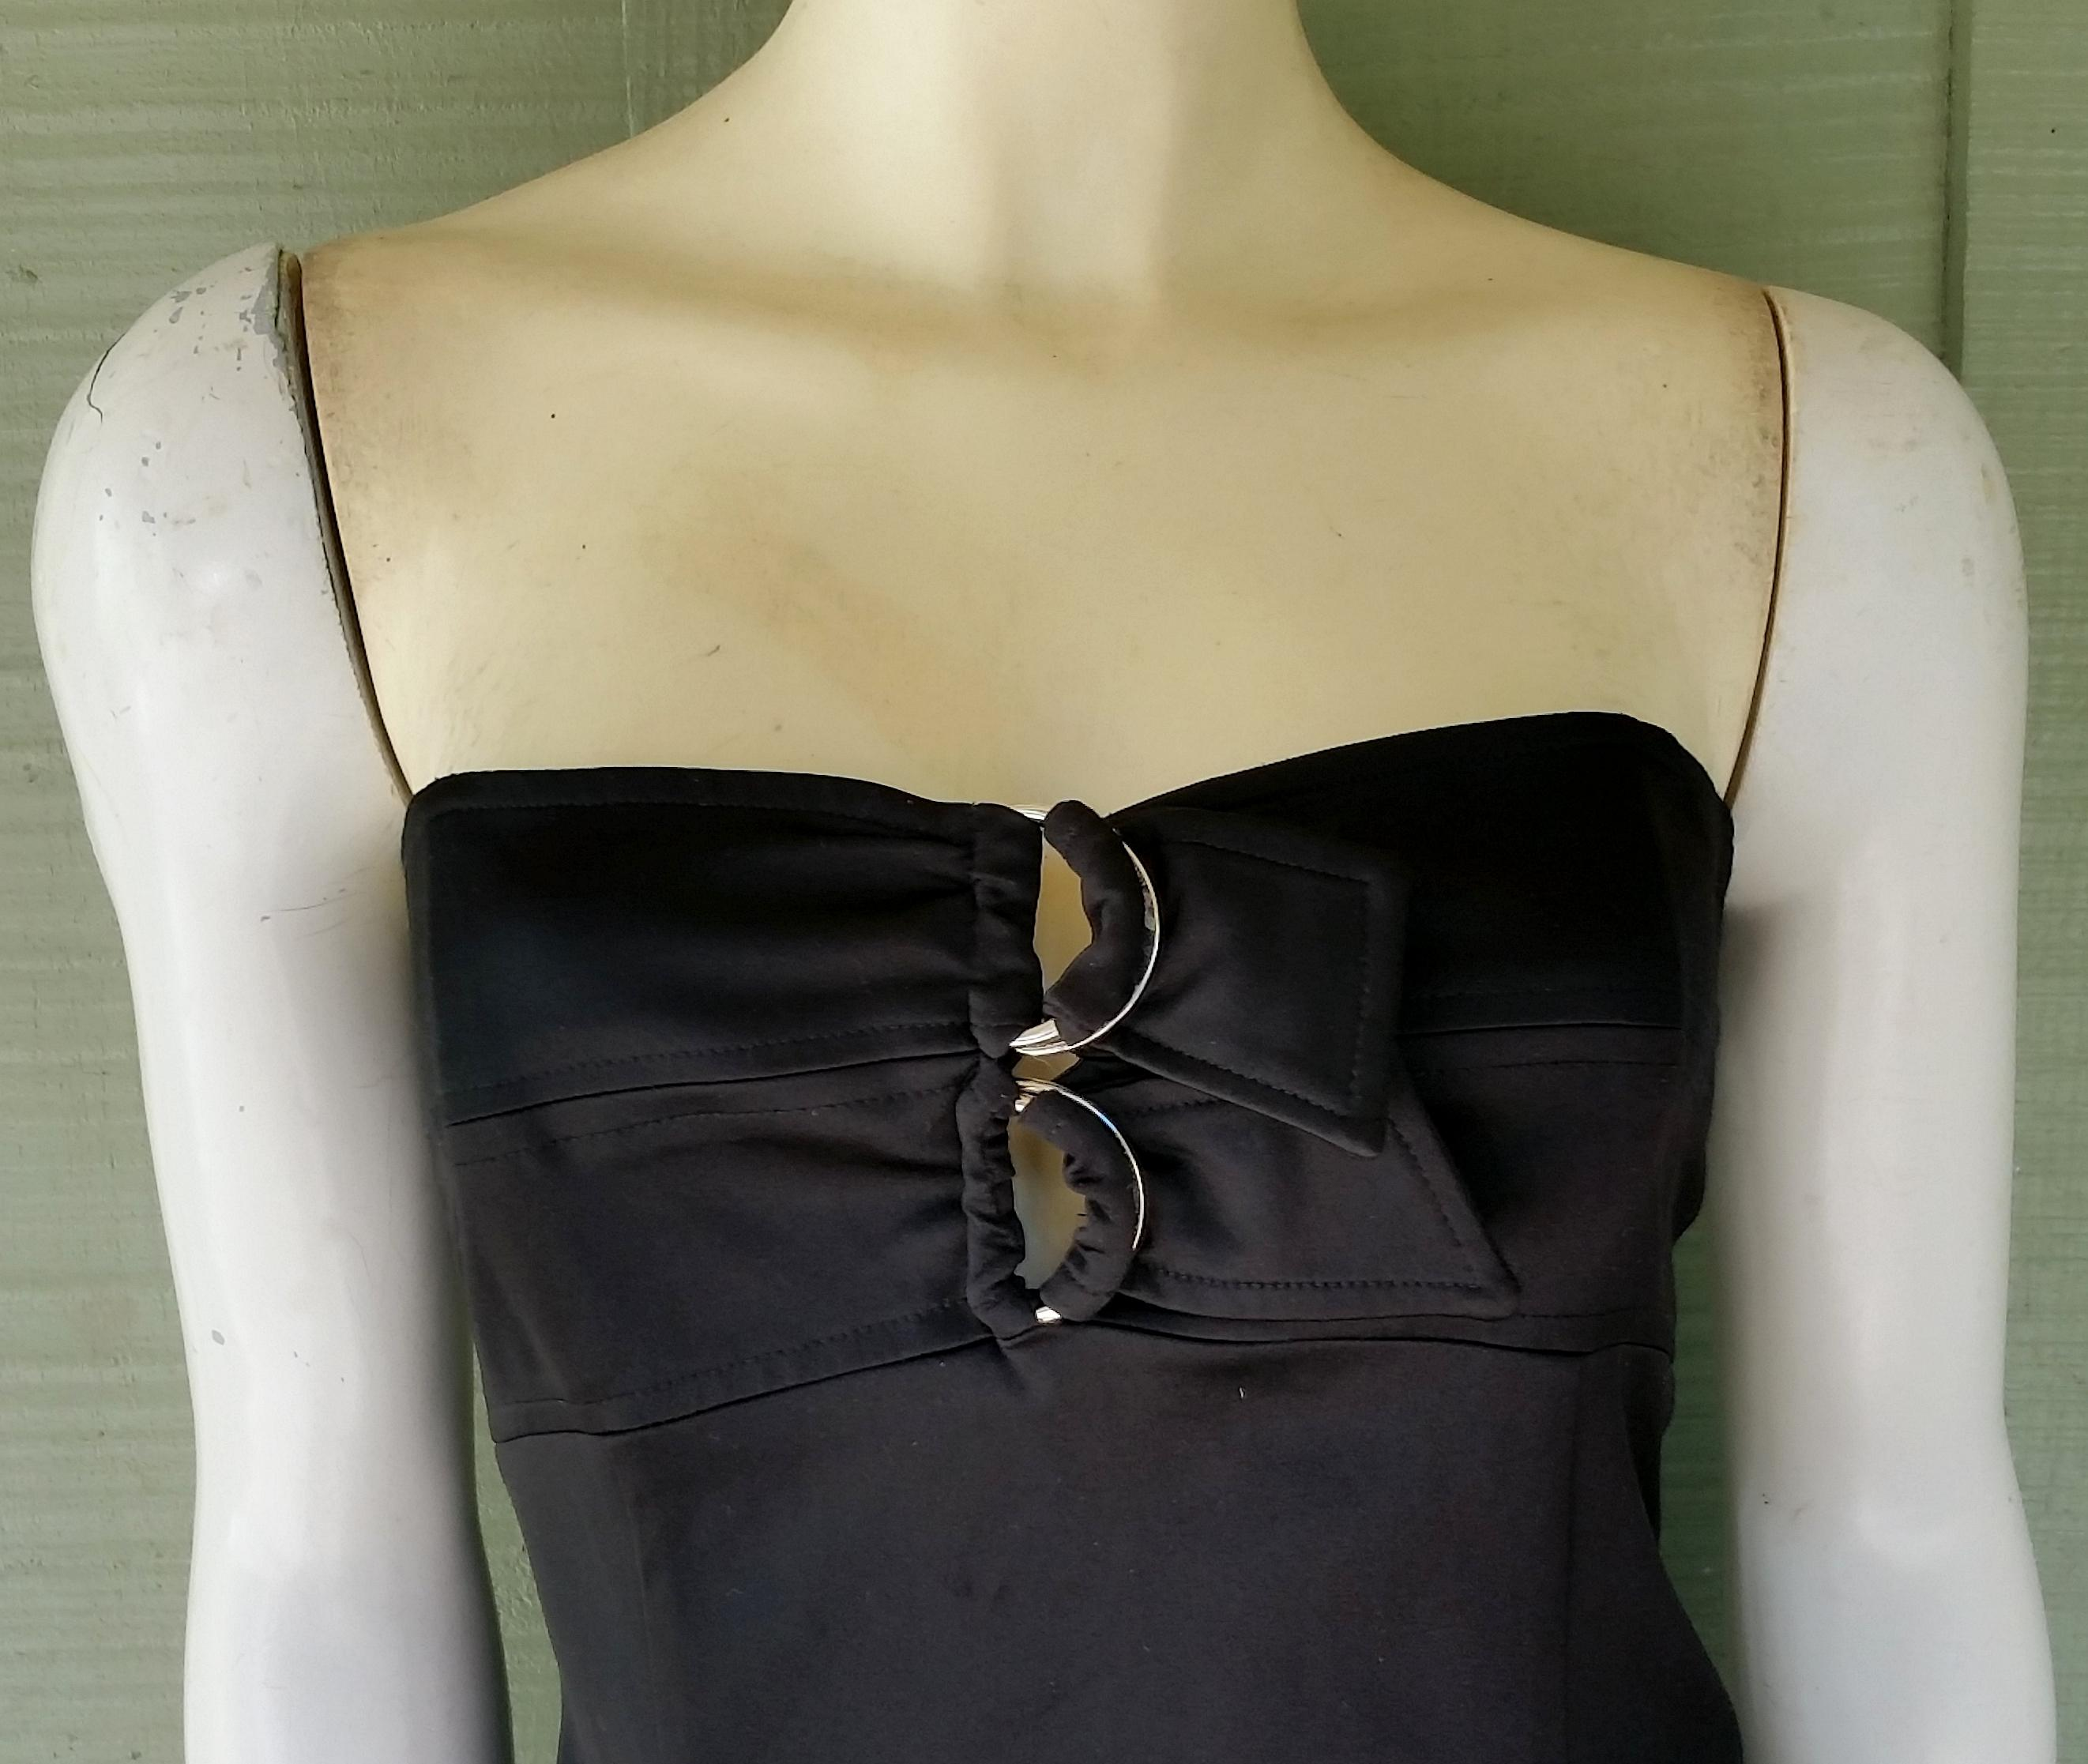 Black Satin Strapless Dring Top Knee Length Night Out. Old Cut European Diamond Wedding Rings. Delicate Rings. Cowboy Wedding Wedding Rings. Big Fat Rings. Islam Engagement Rings. Tv Show Engagement Rings. Dna Wedding Rings. $50000 Engagement Rings